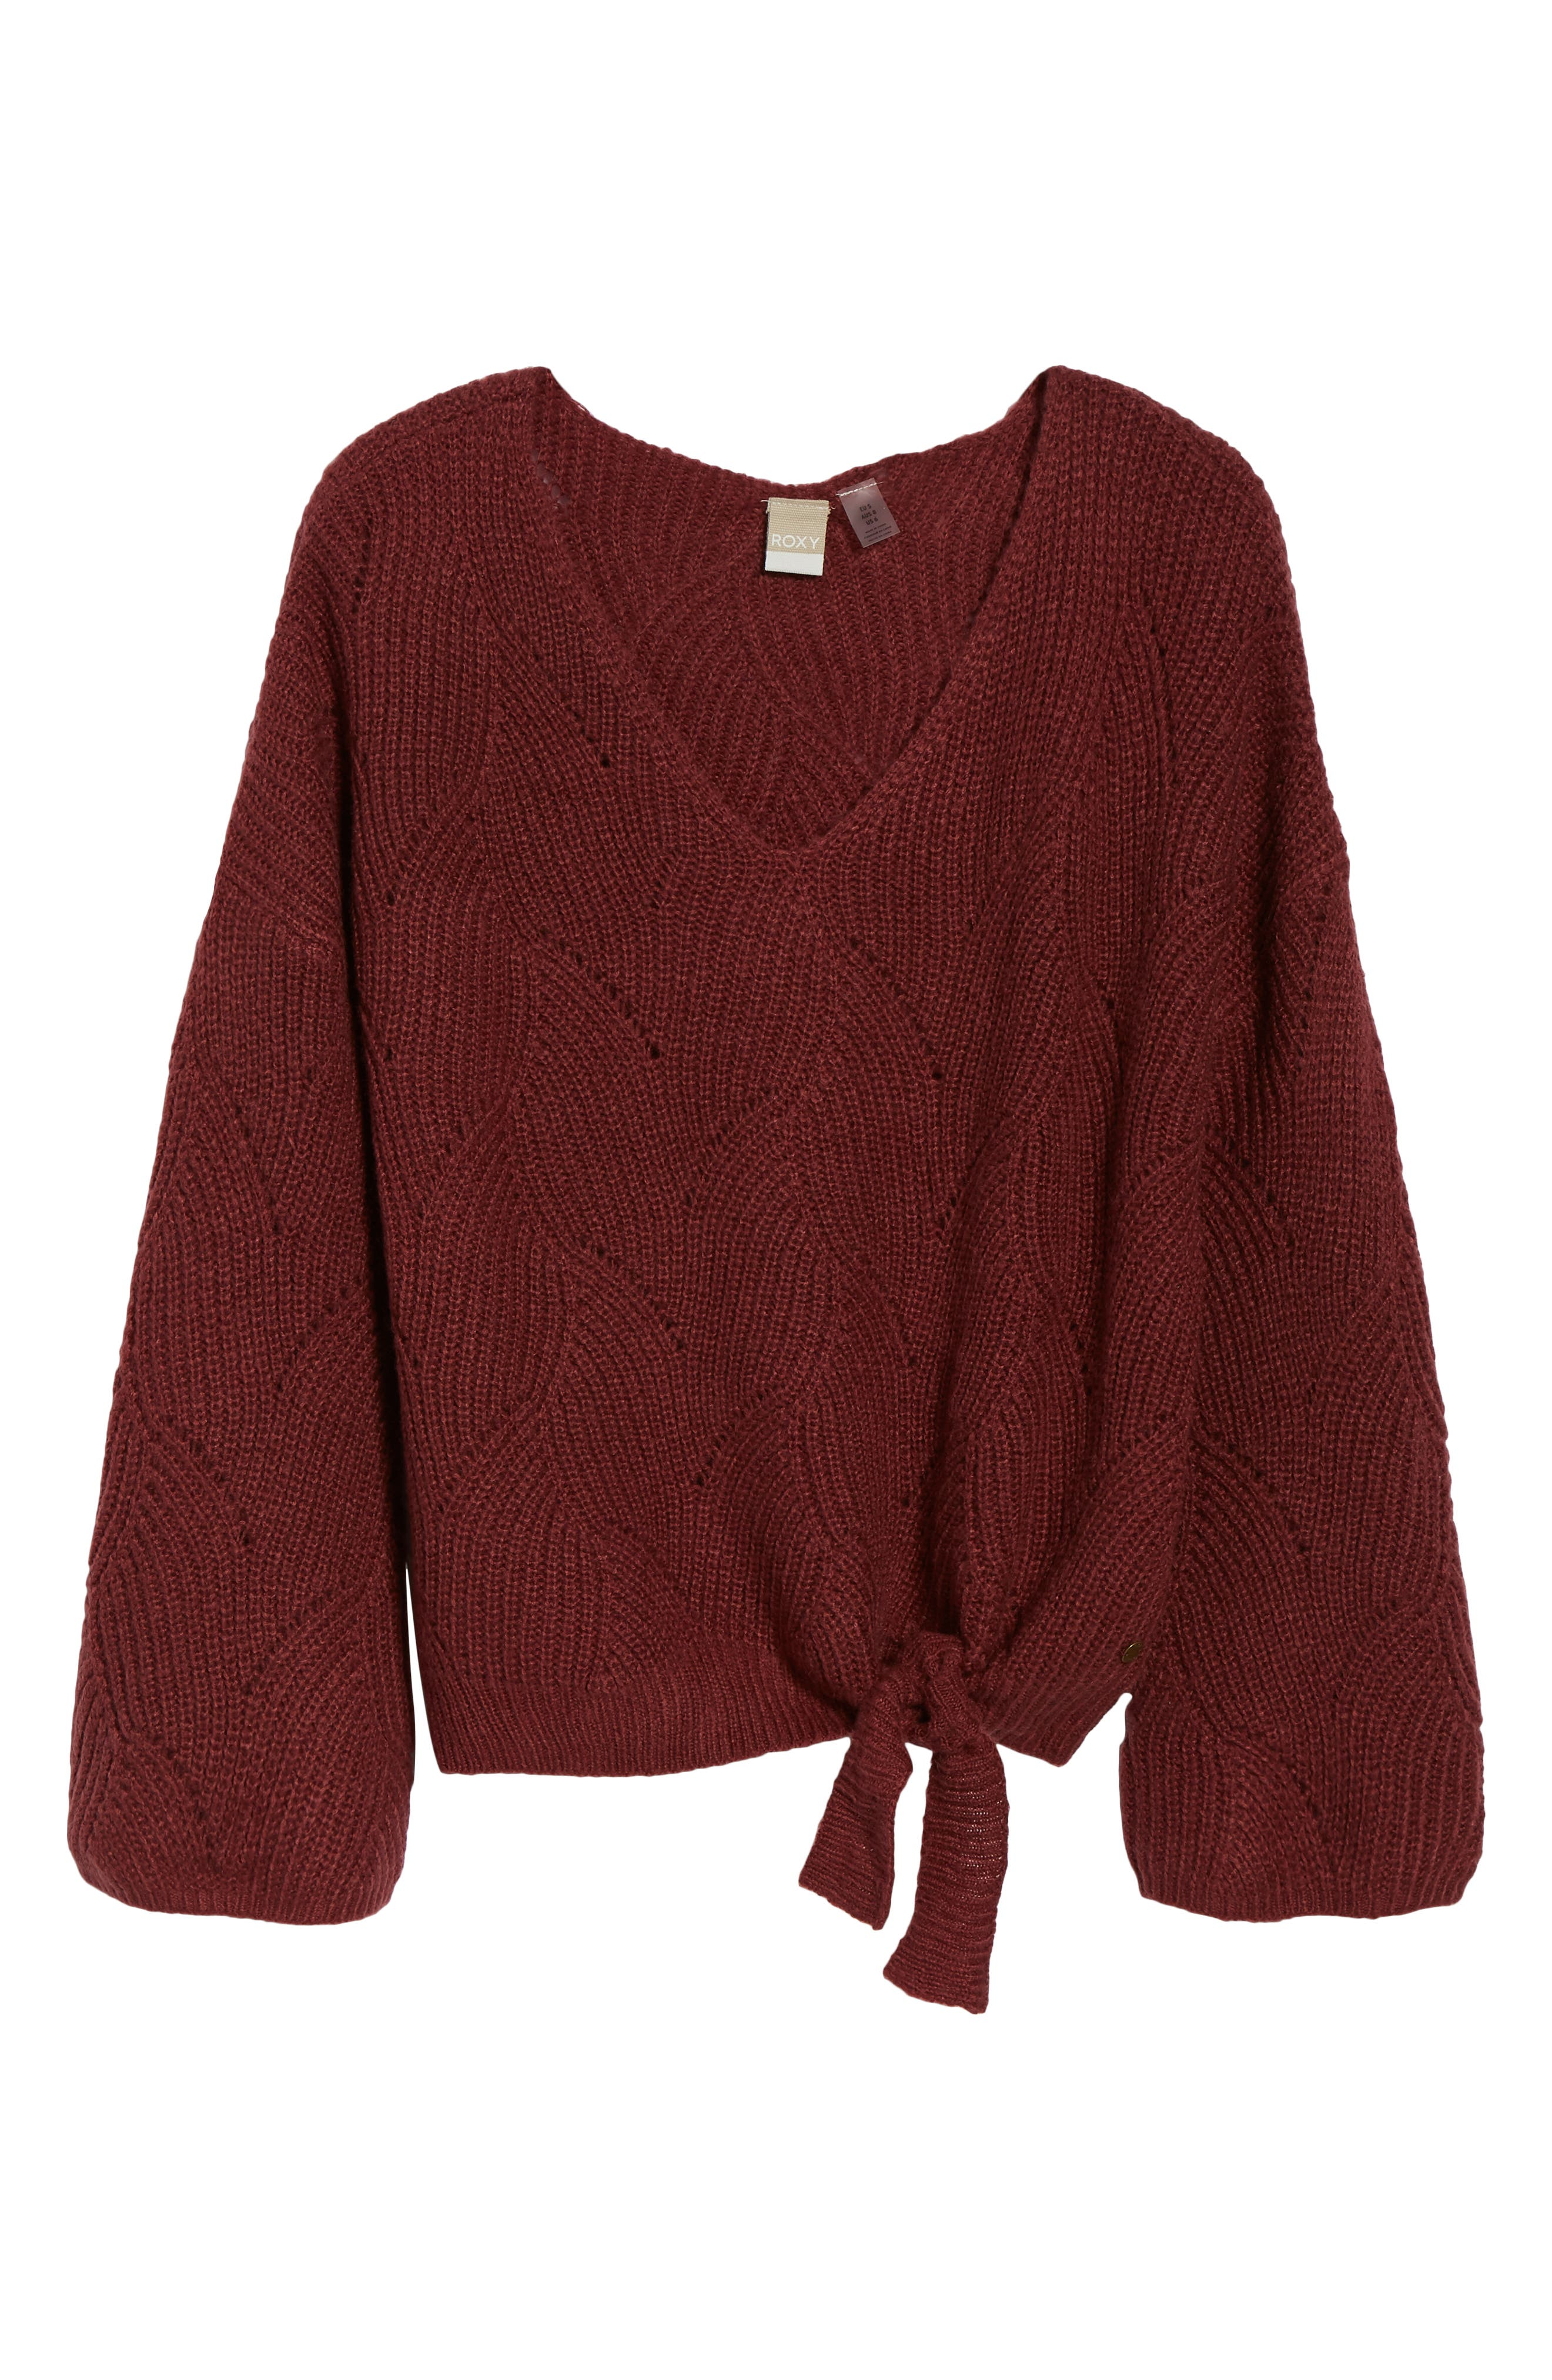 ROXY,                             See You In Bali Sweater,                             Alternate thumbnail 6, color,                             600